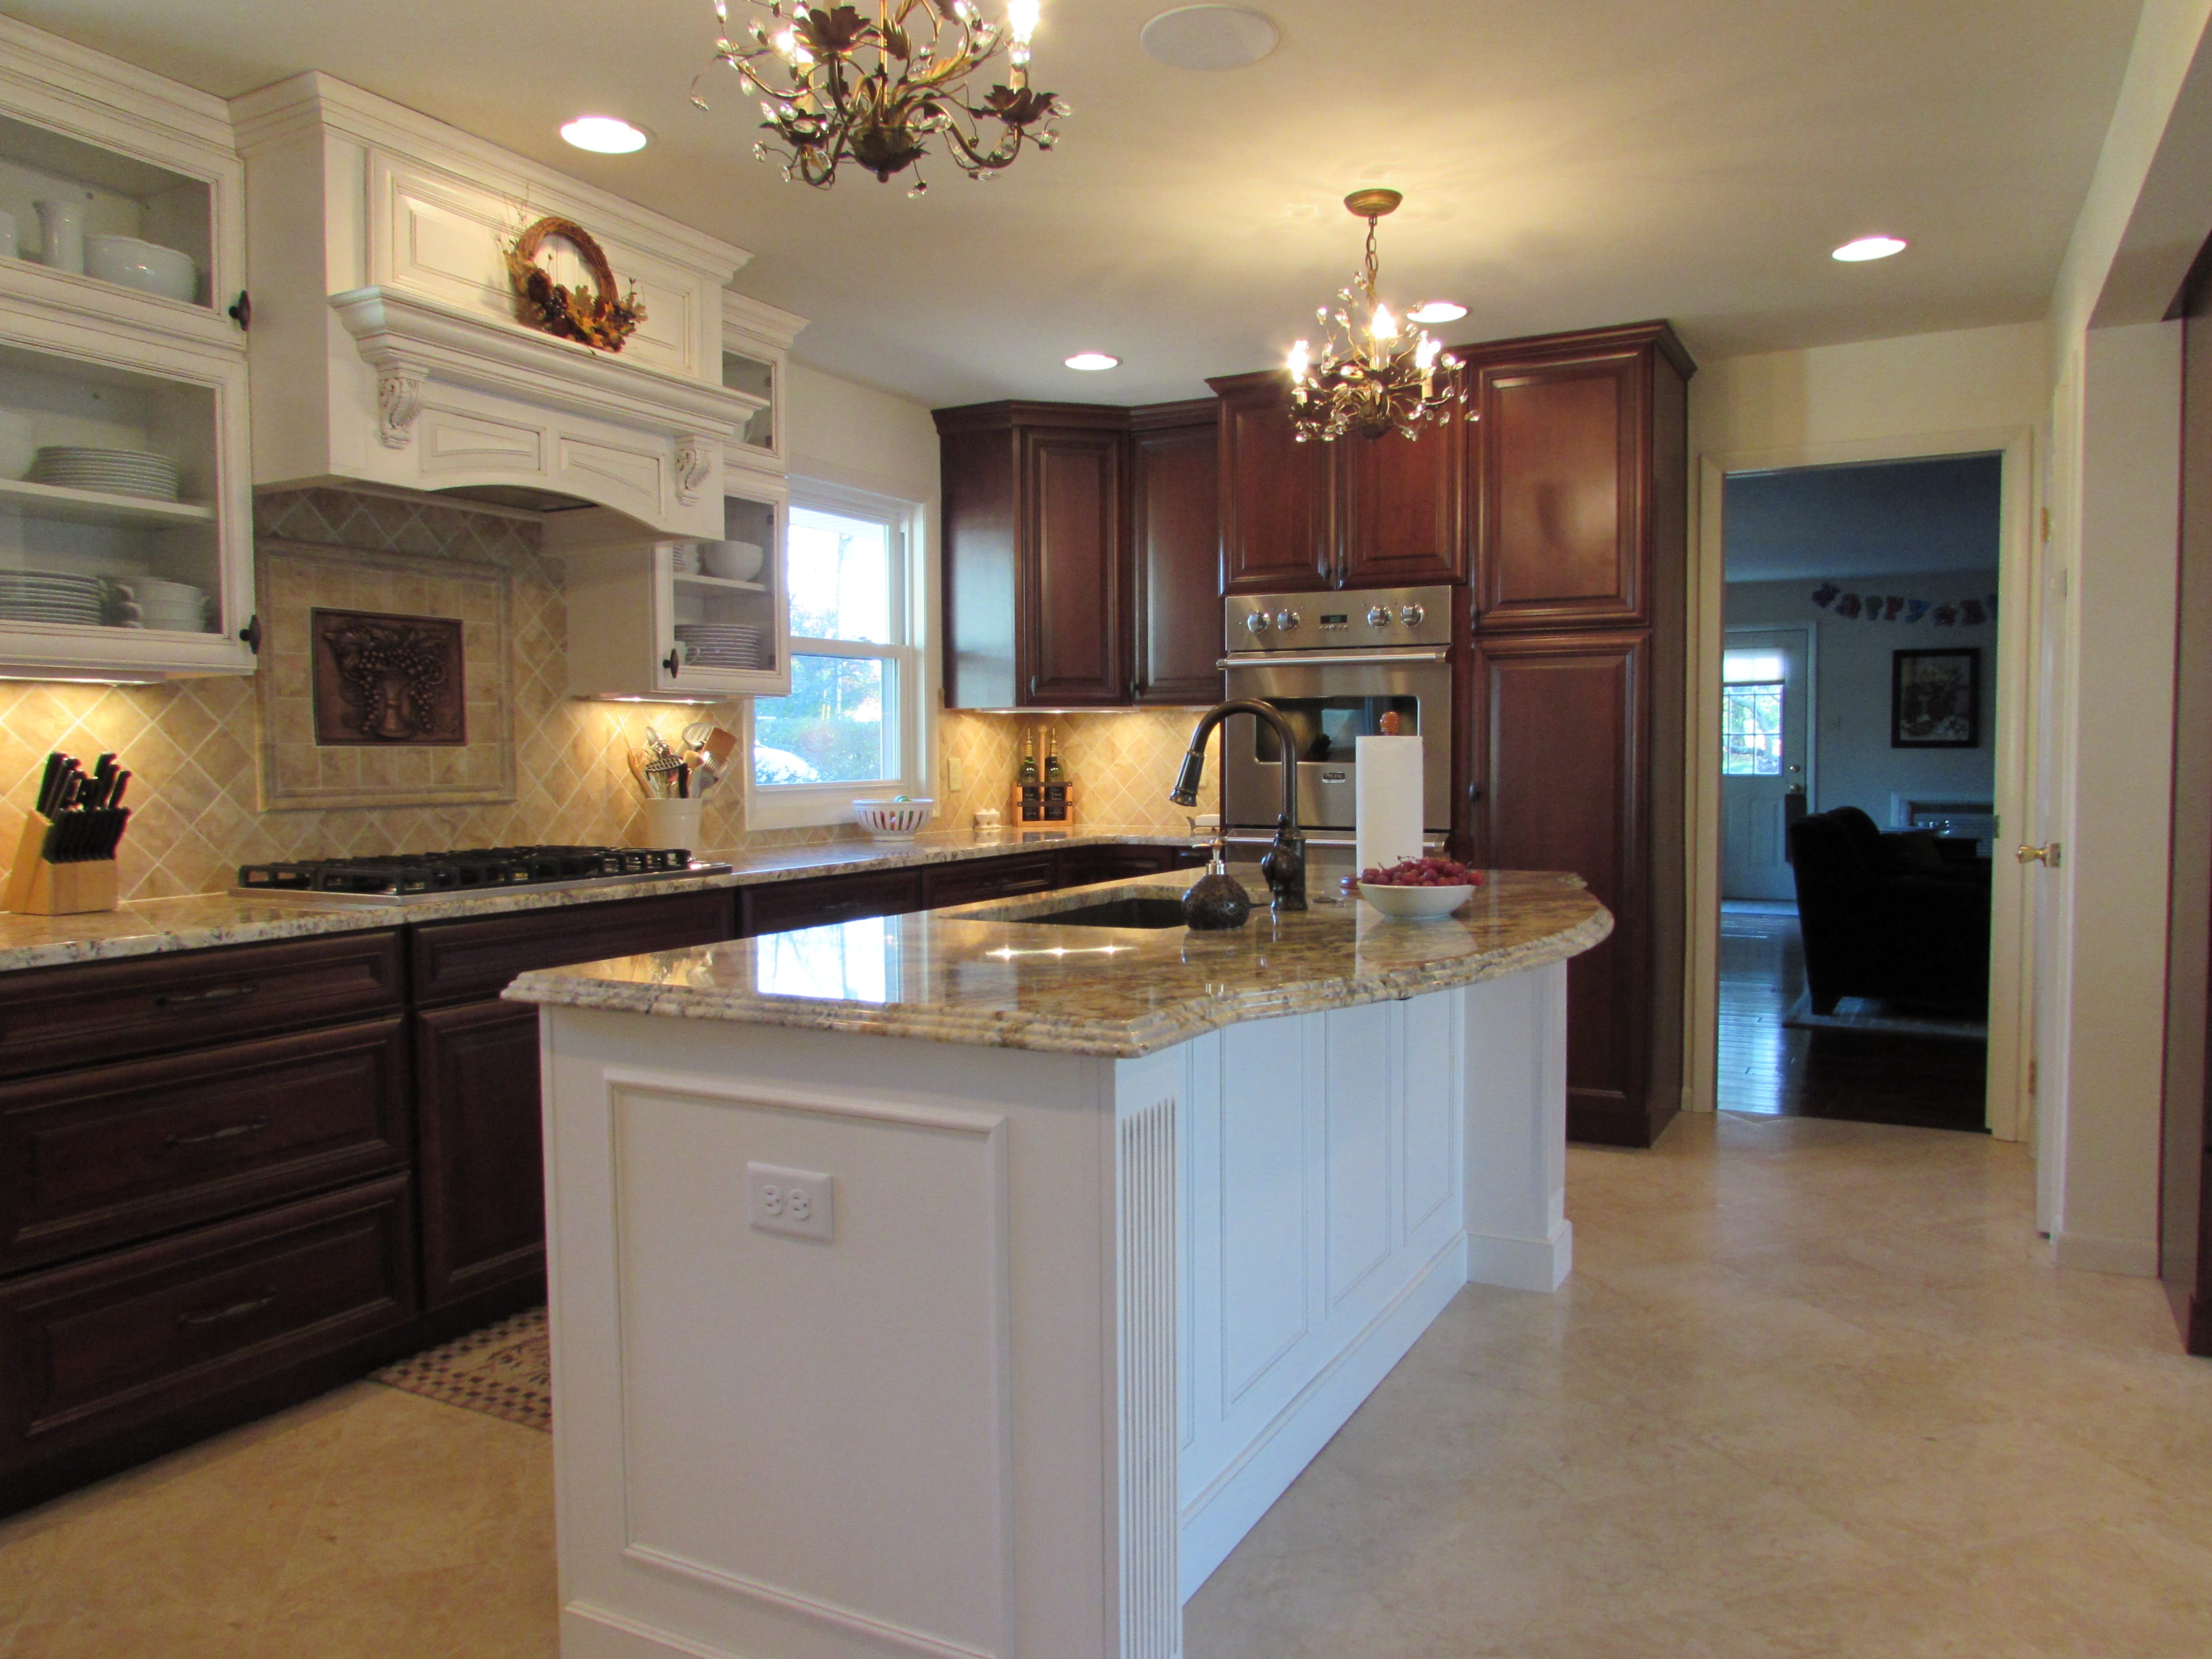 Middletown, MD kitchen remodel with butler's pantry ...